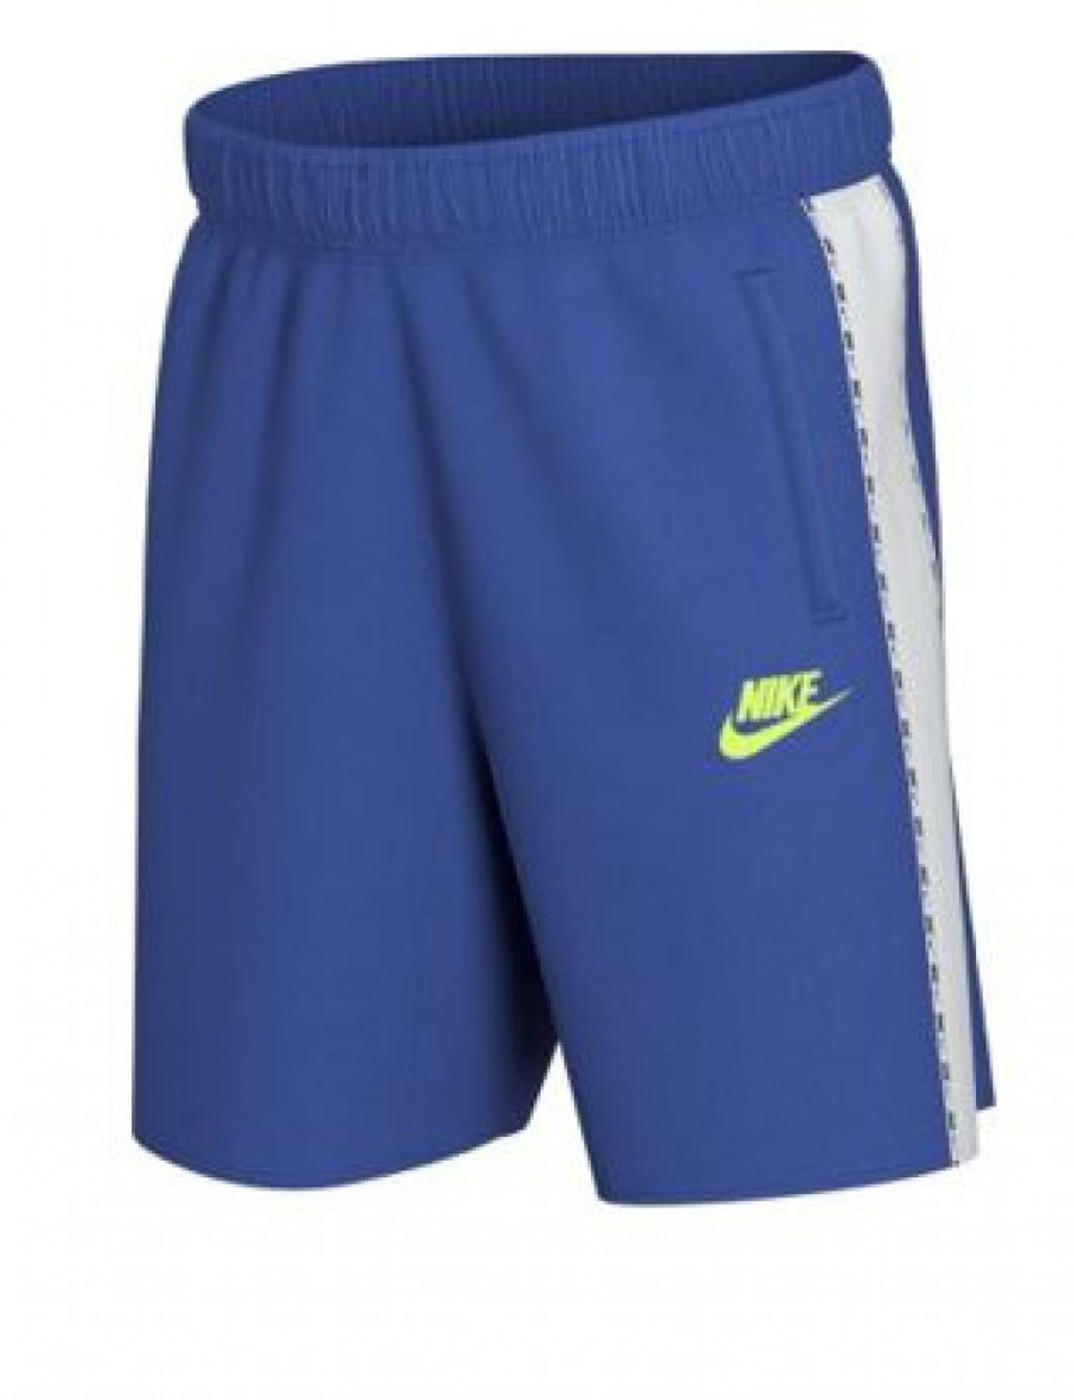 NIKE B NSW REPEAT PK SHORT - Kinder